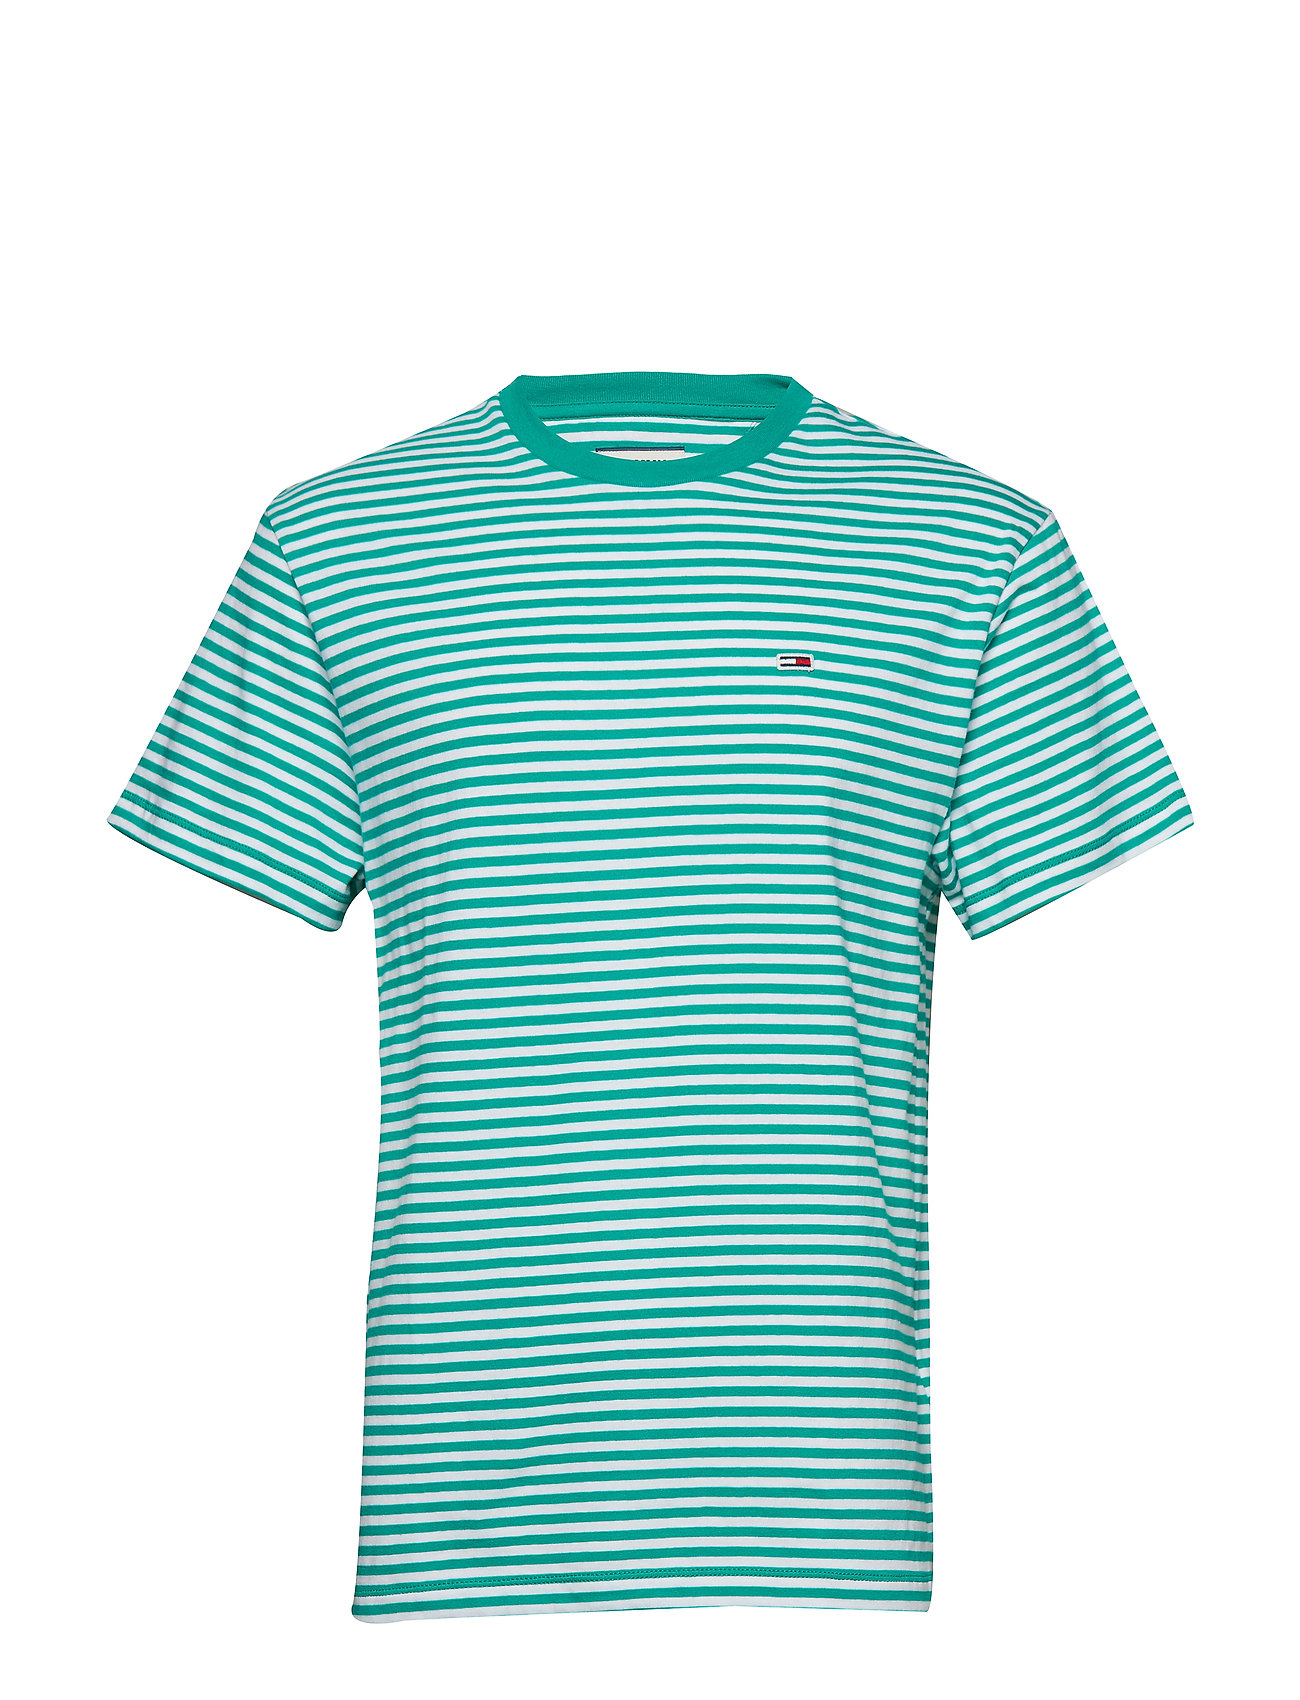 Tommy Jeans TJM TOMMY CLASSICS S - DYNASTY GREEN / CLASSIC WHITE